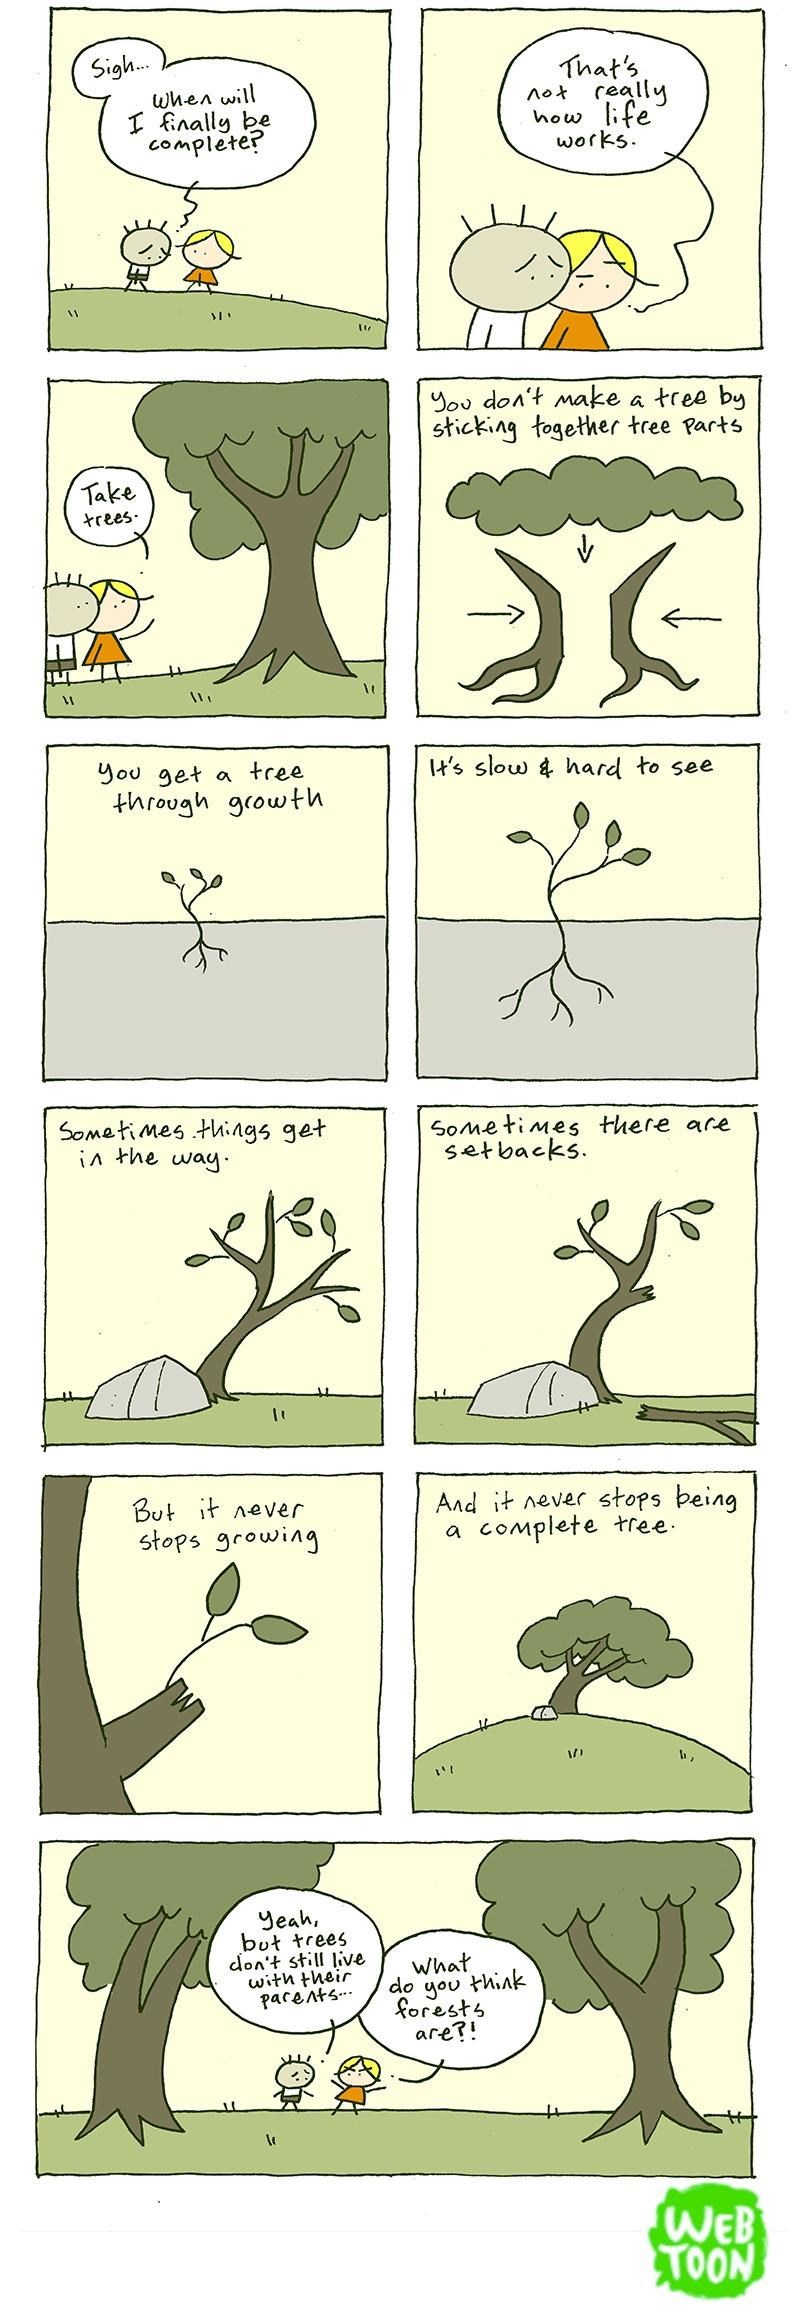 web comics trees metaphor Those Poor Trees